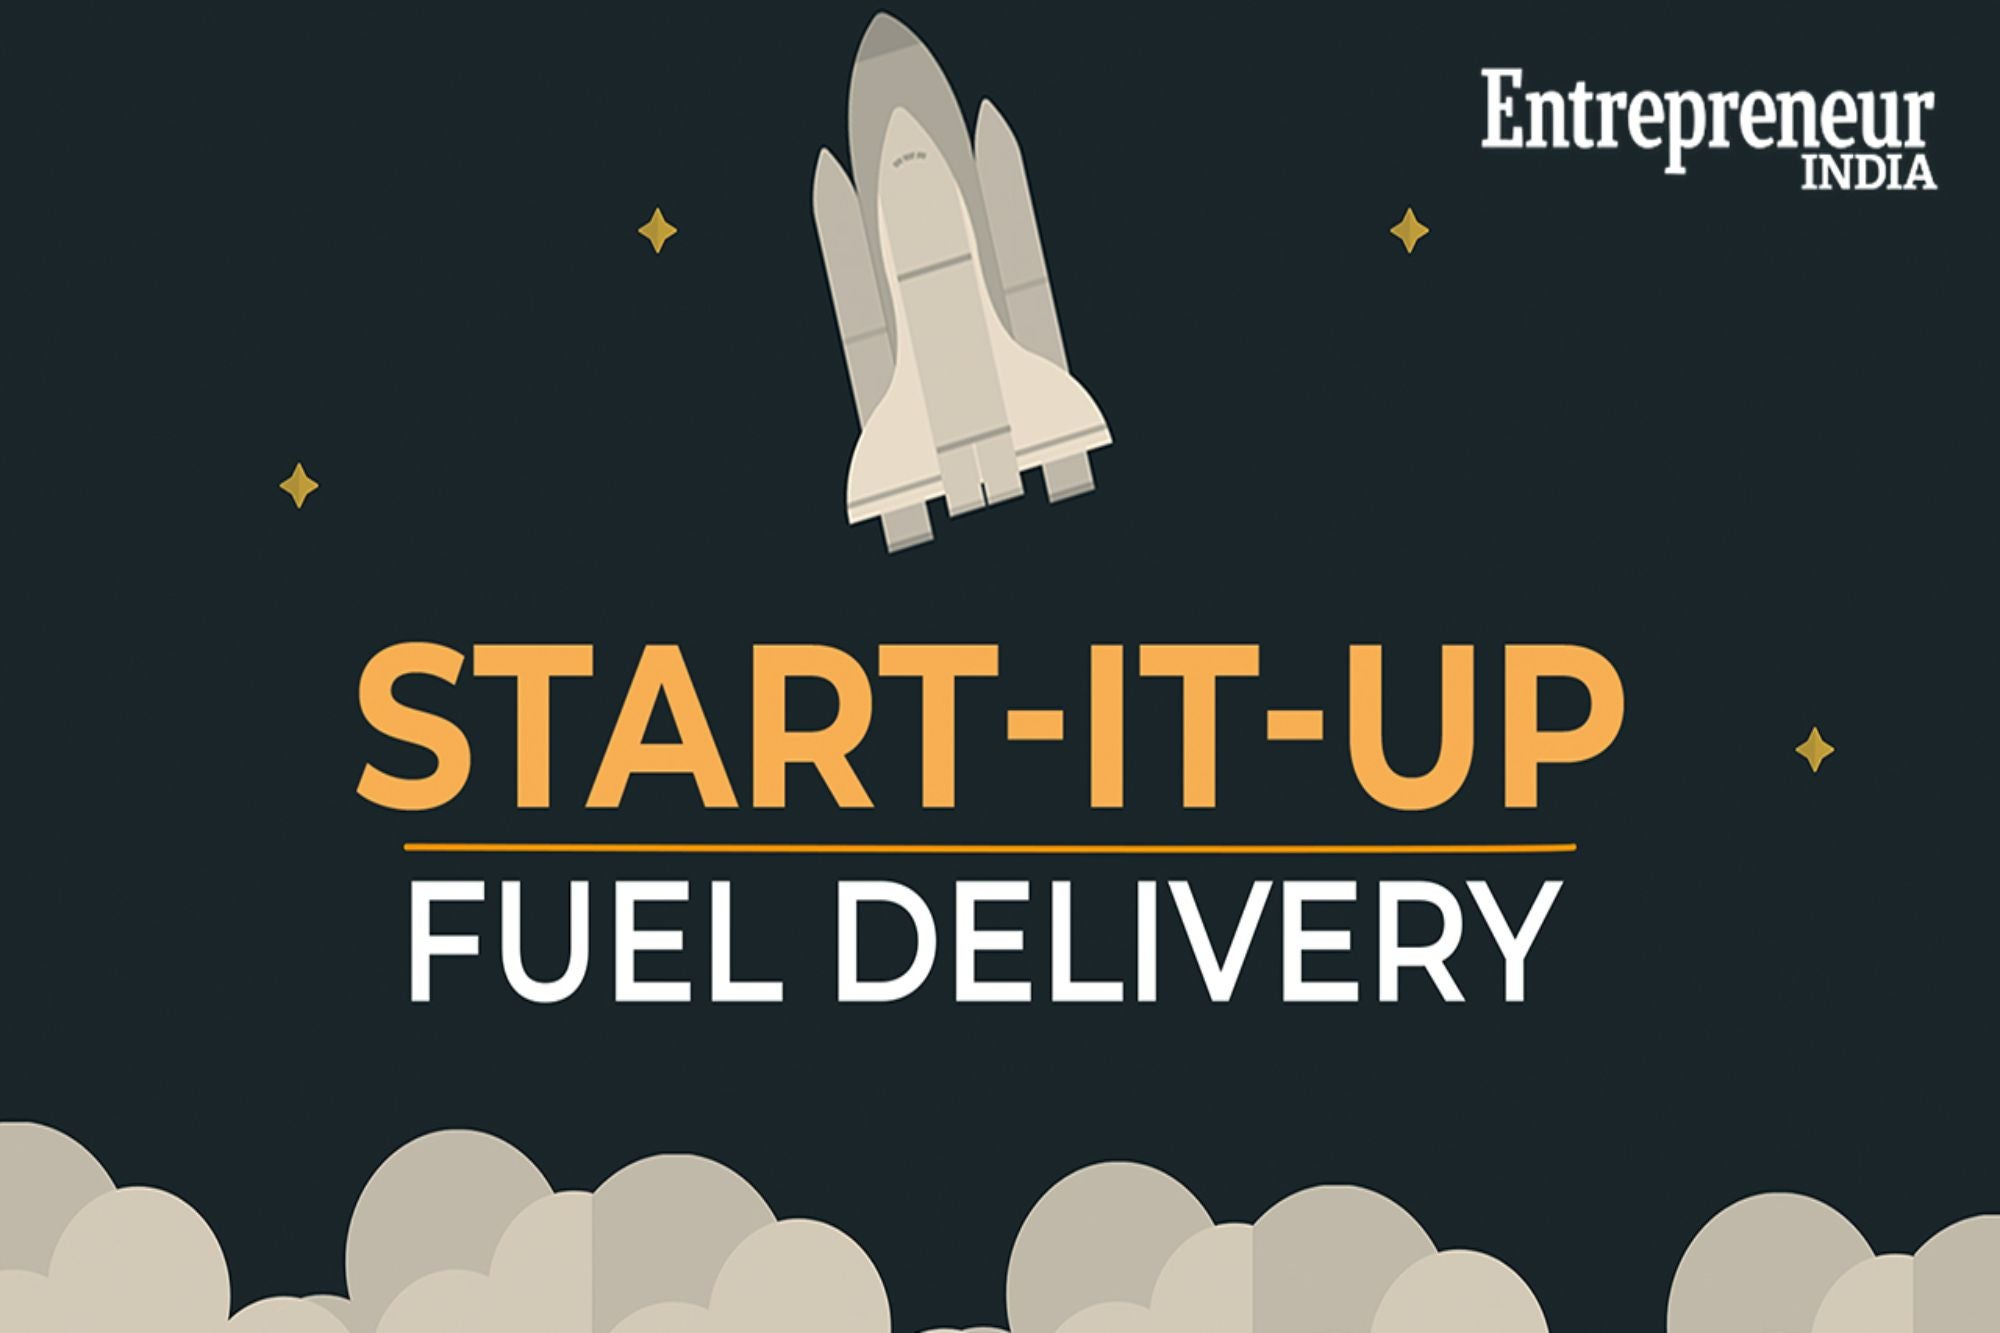 [Start-it-up] How To Start A Fuel Delivery Business?